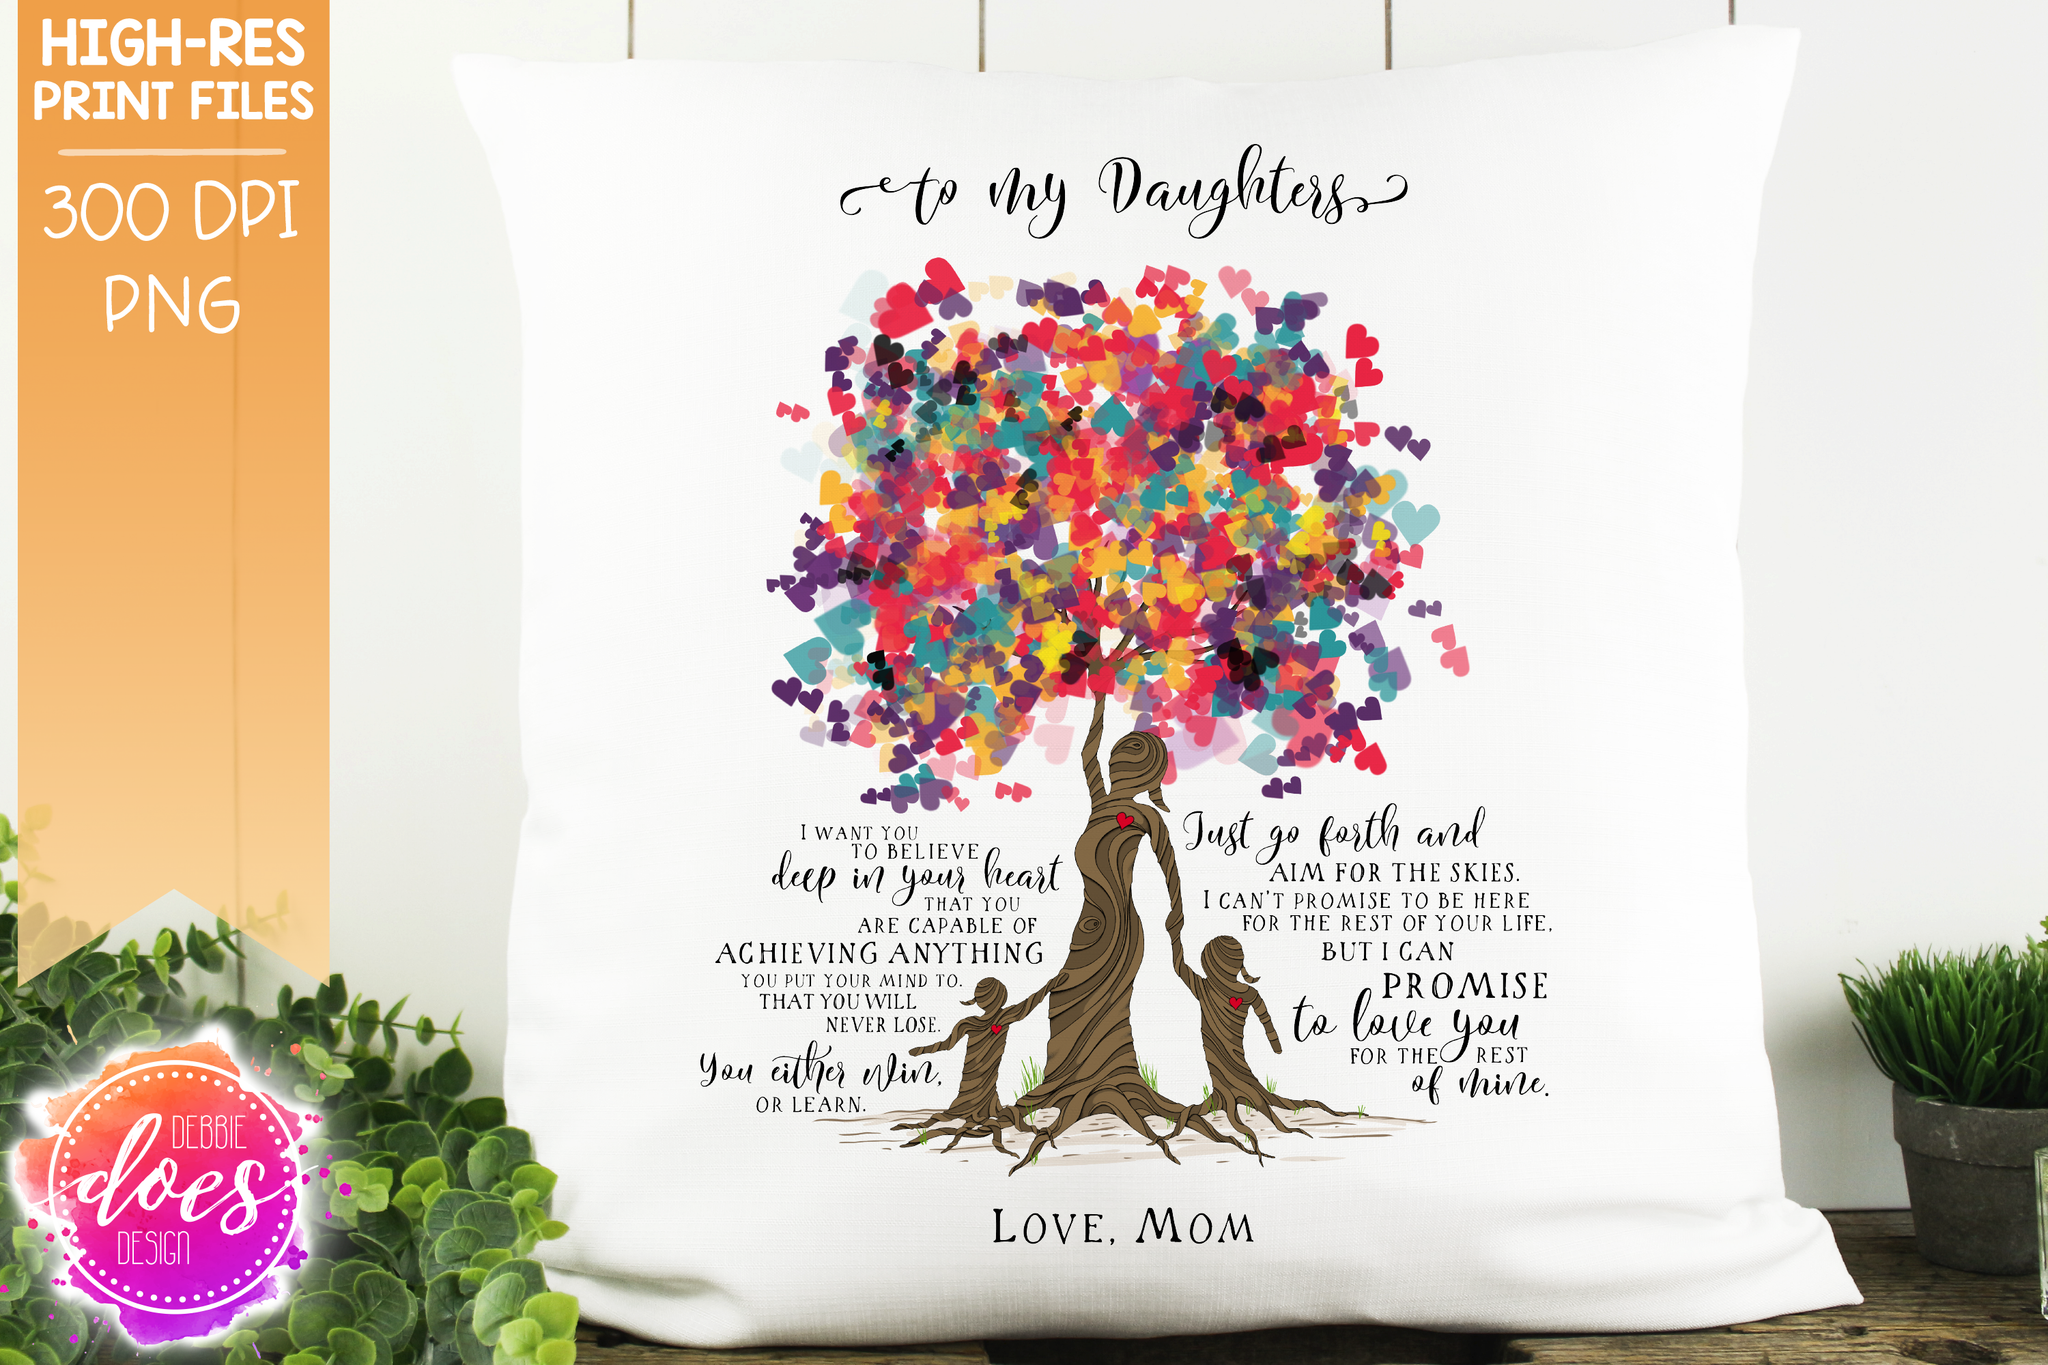 Love You for the Rest of Mine Heart Scatter Tree - Customizable - 2 Girls Kit - Sublimation/Printable Design